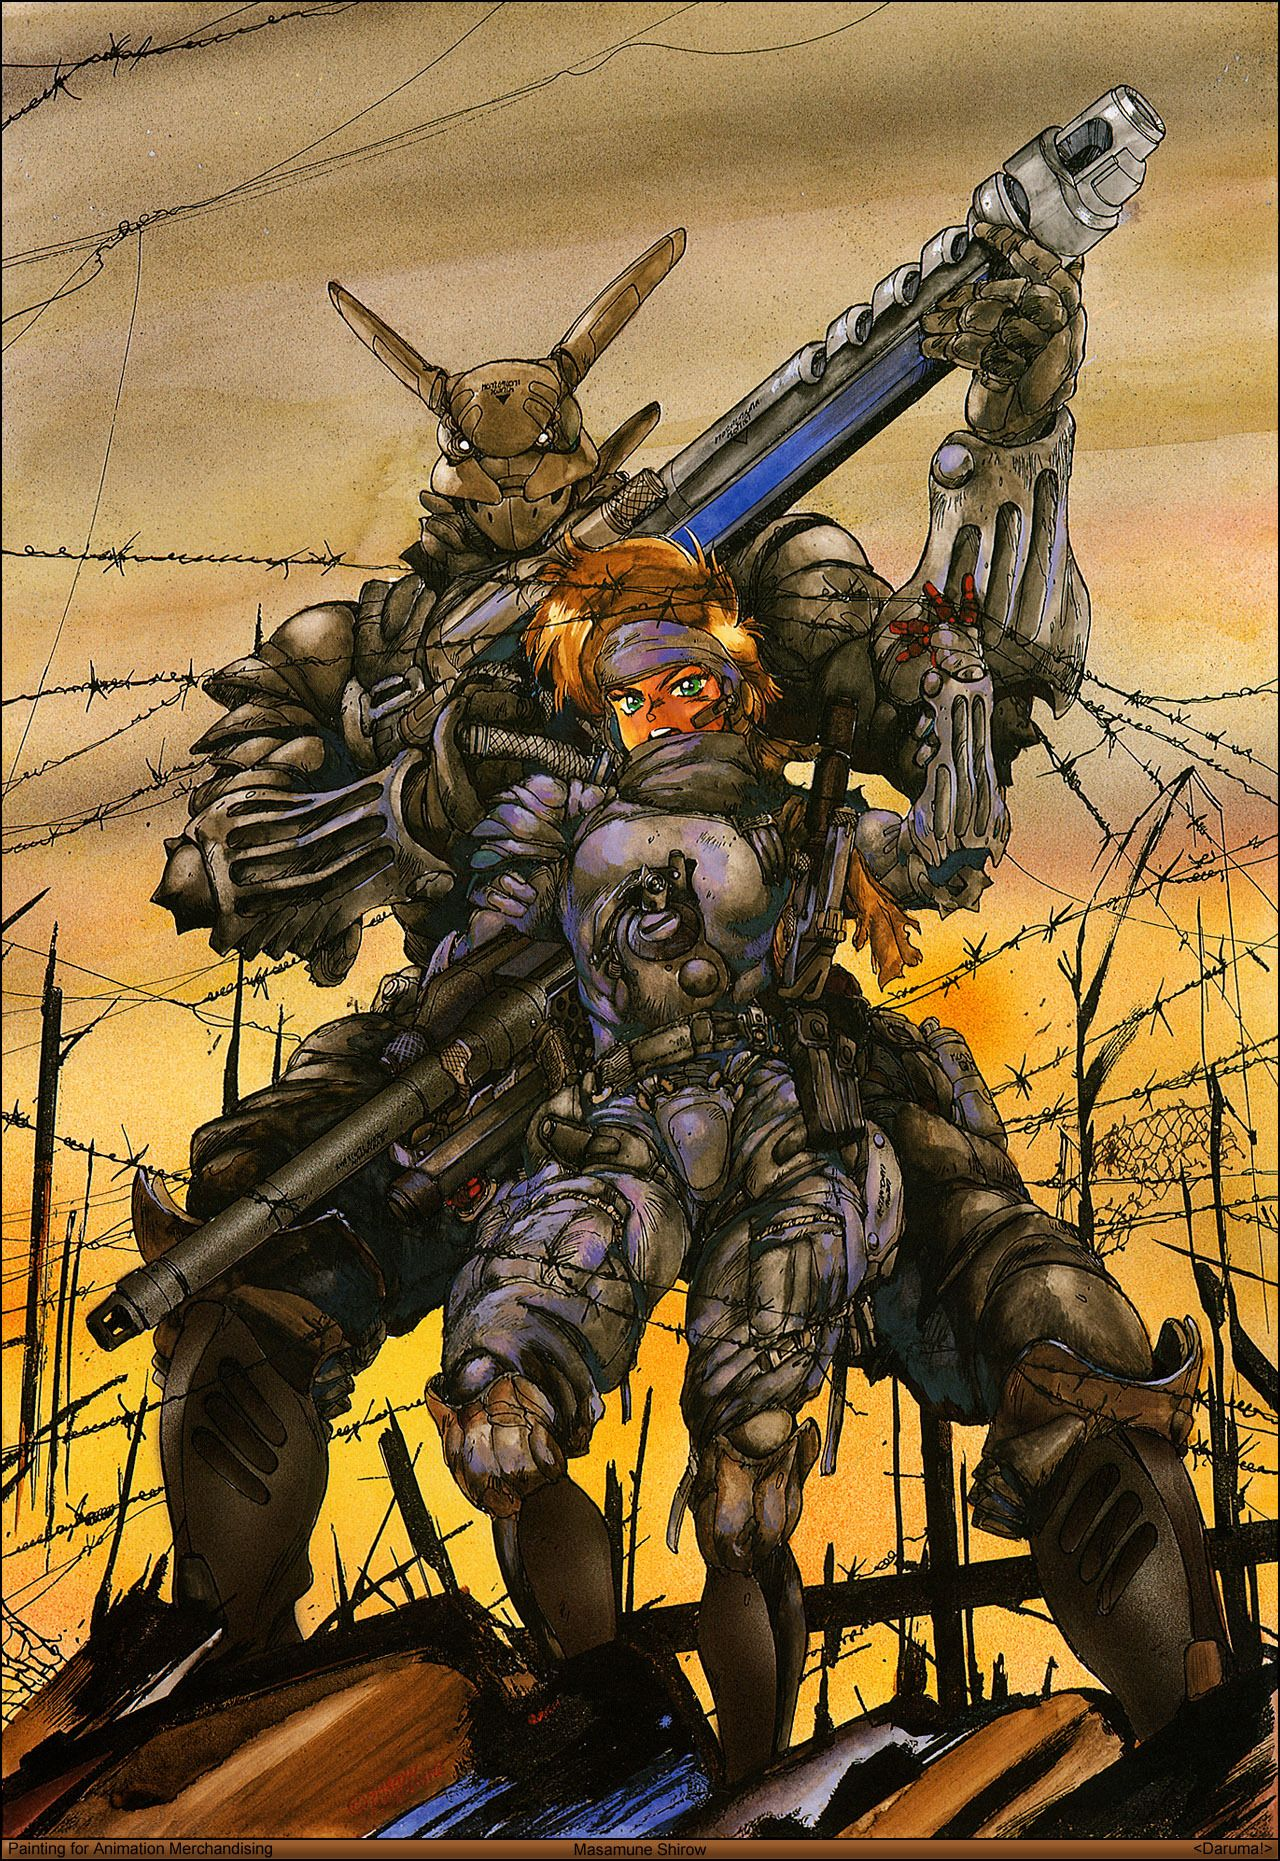 Appleseed Character Design : Awesome appleseed artwork by masamune shirow